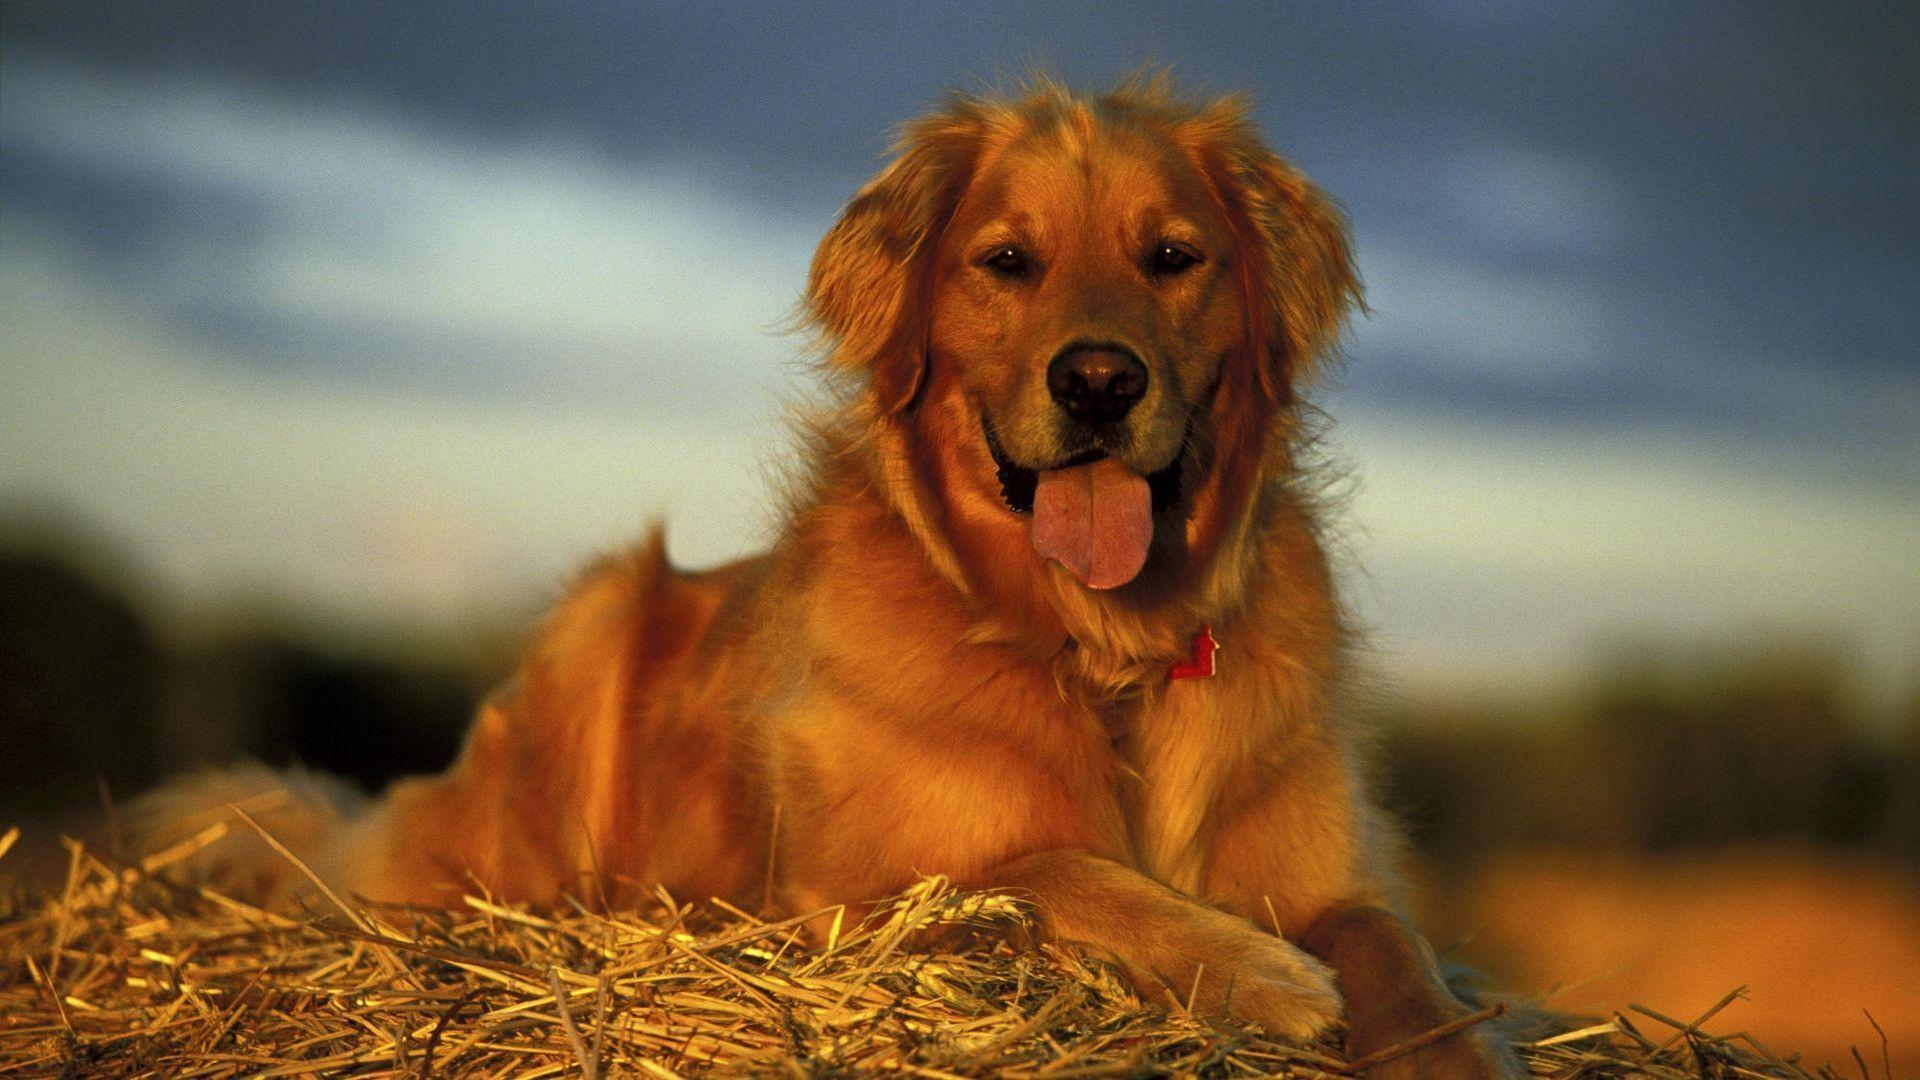 Golden Retriever HD Wallpapers - HD Wallpapers Inn